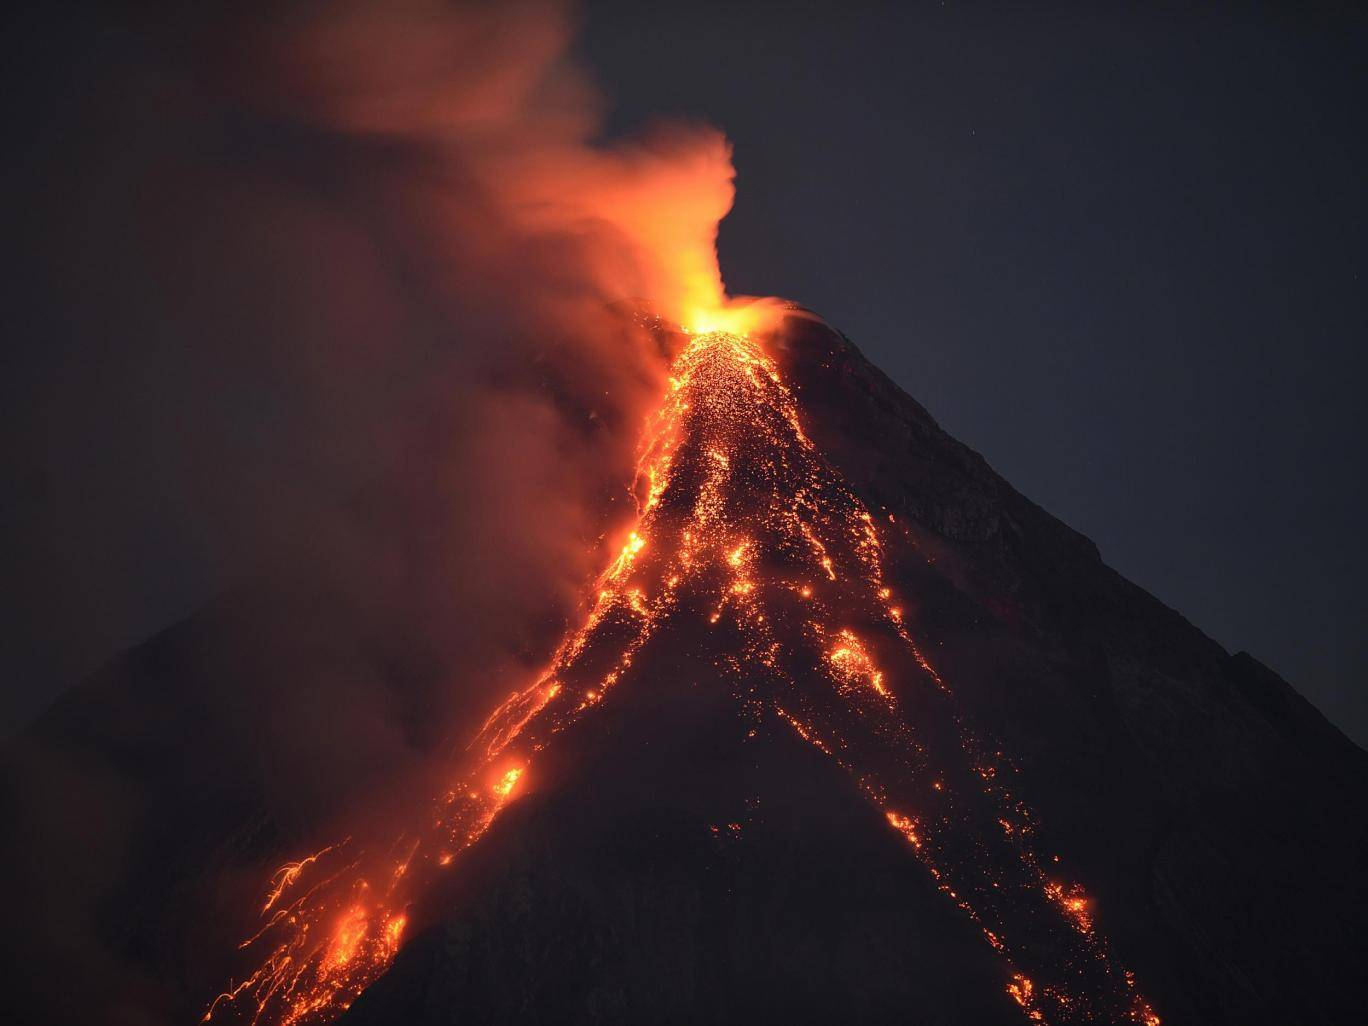 Climate change could trigger volcanic eruptions across the world, warn scientists